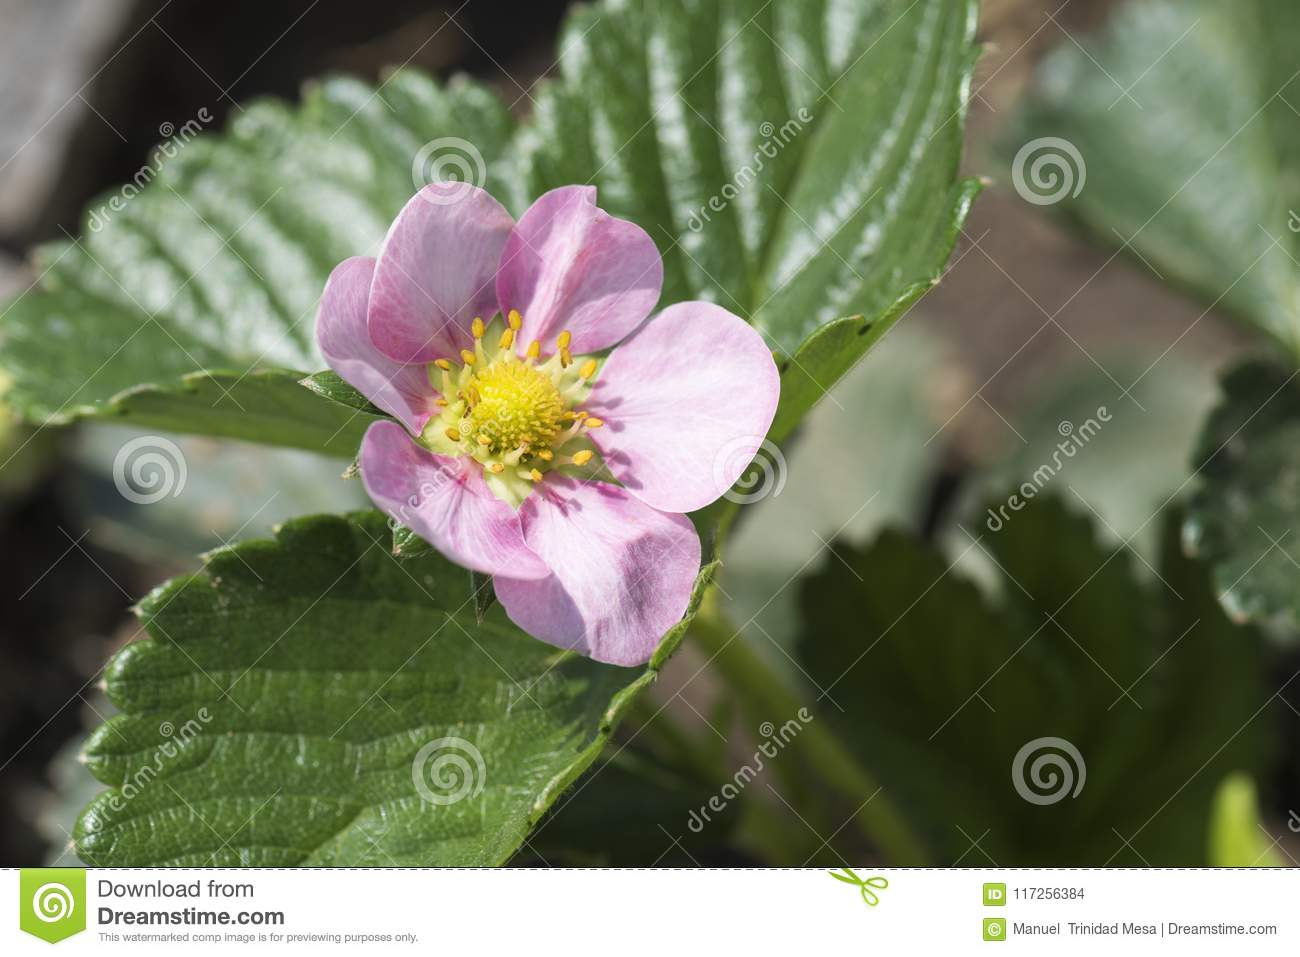 Strawberry Plant With Pink Flower Stock Photo Image Of Background